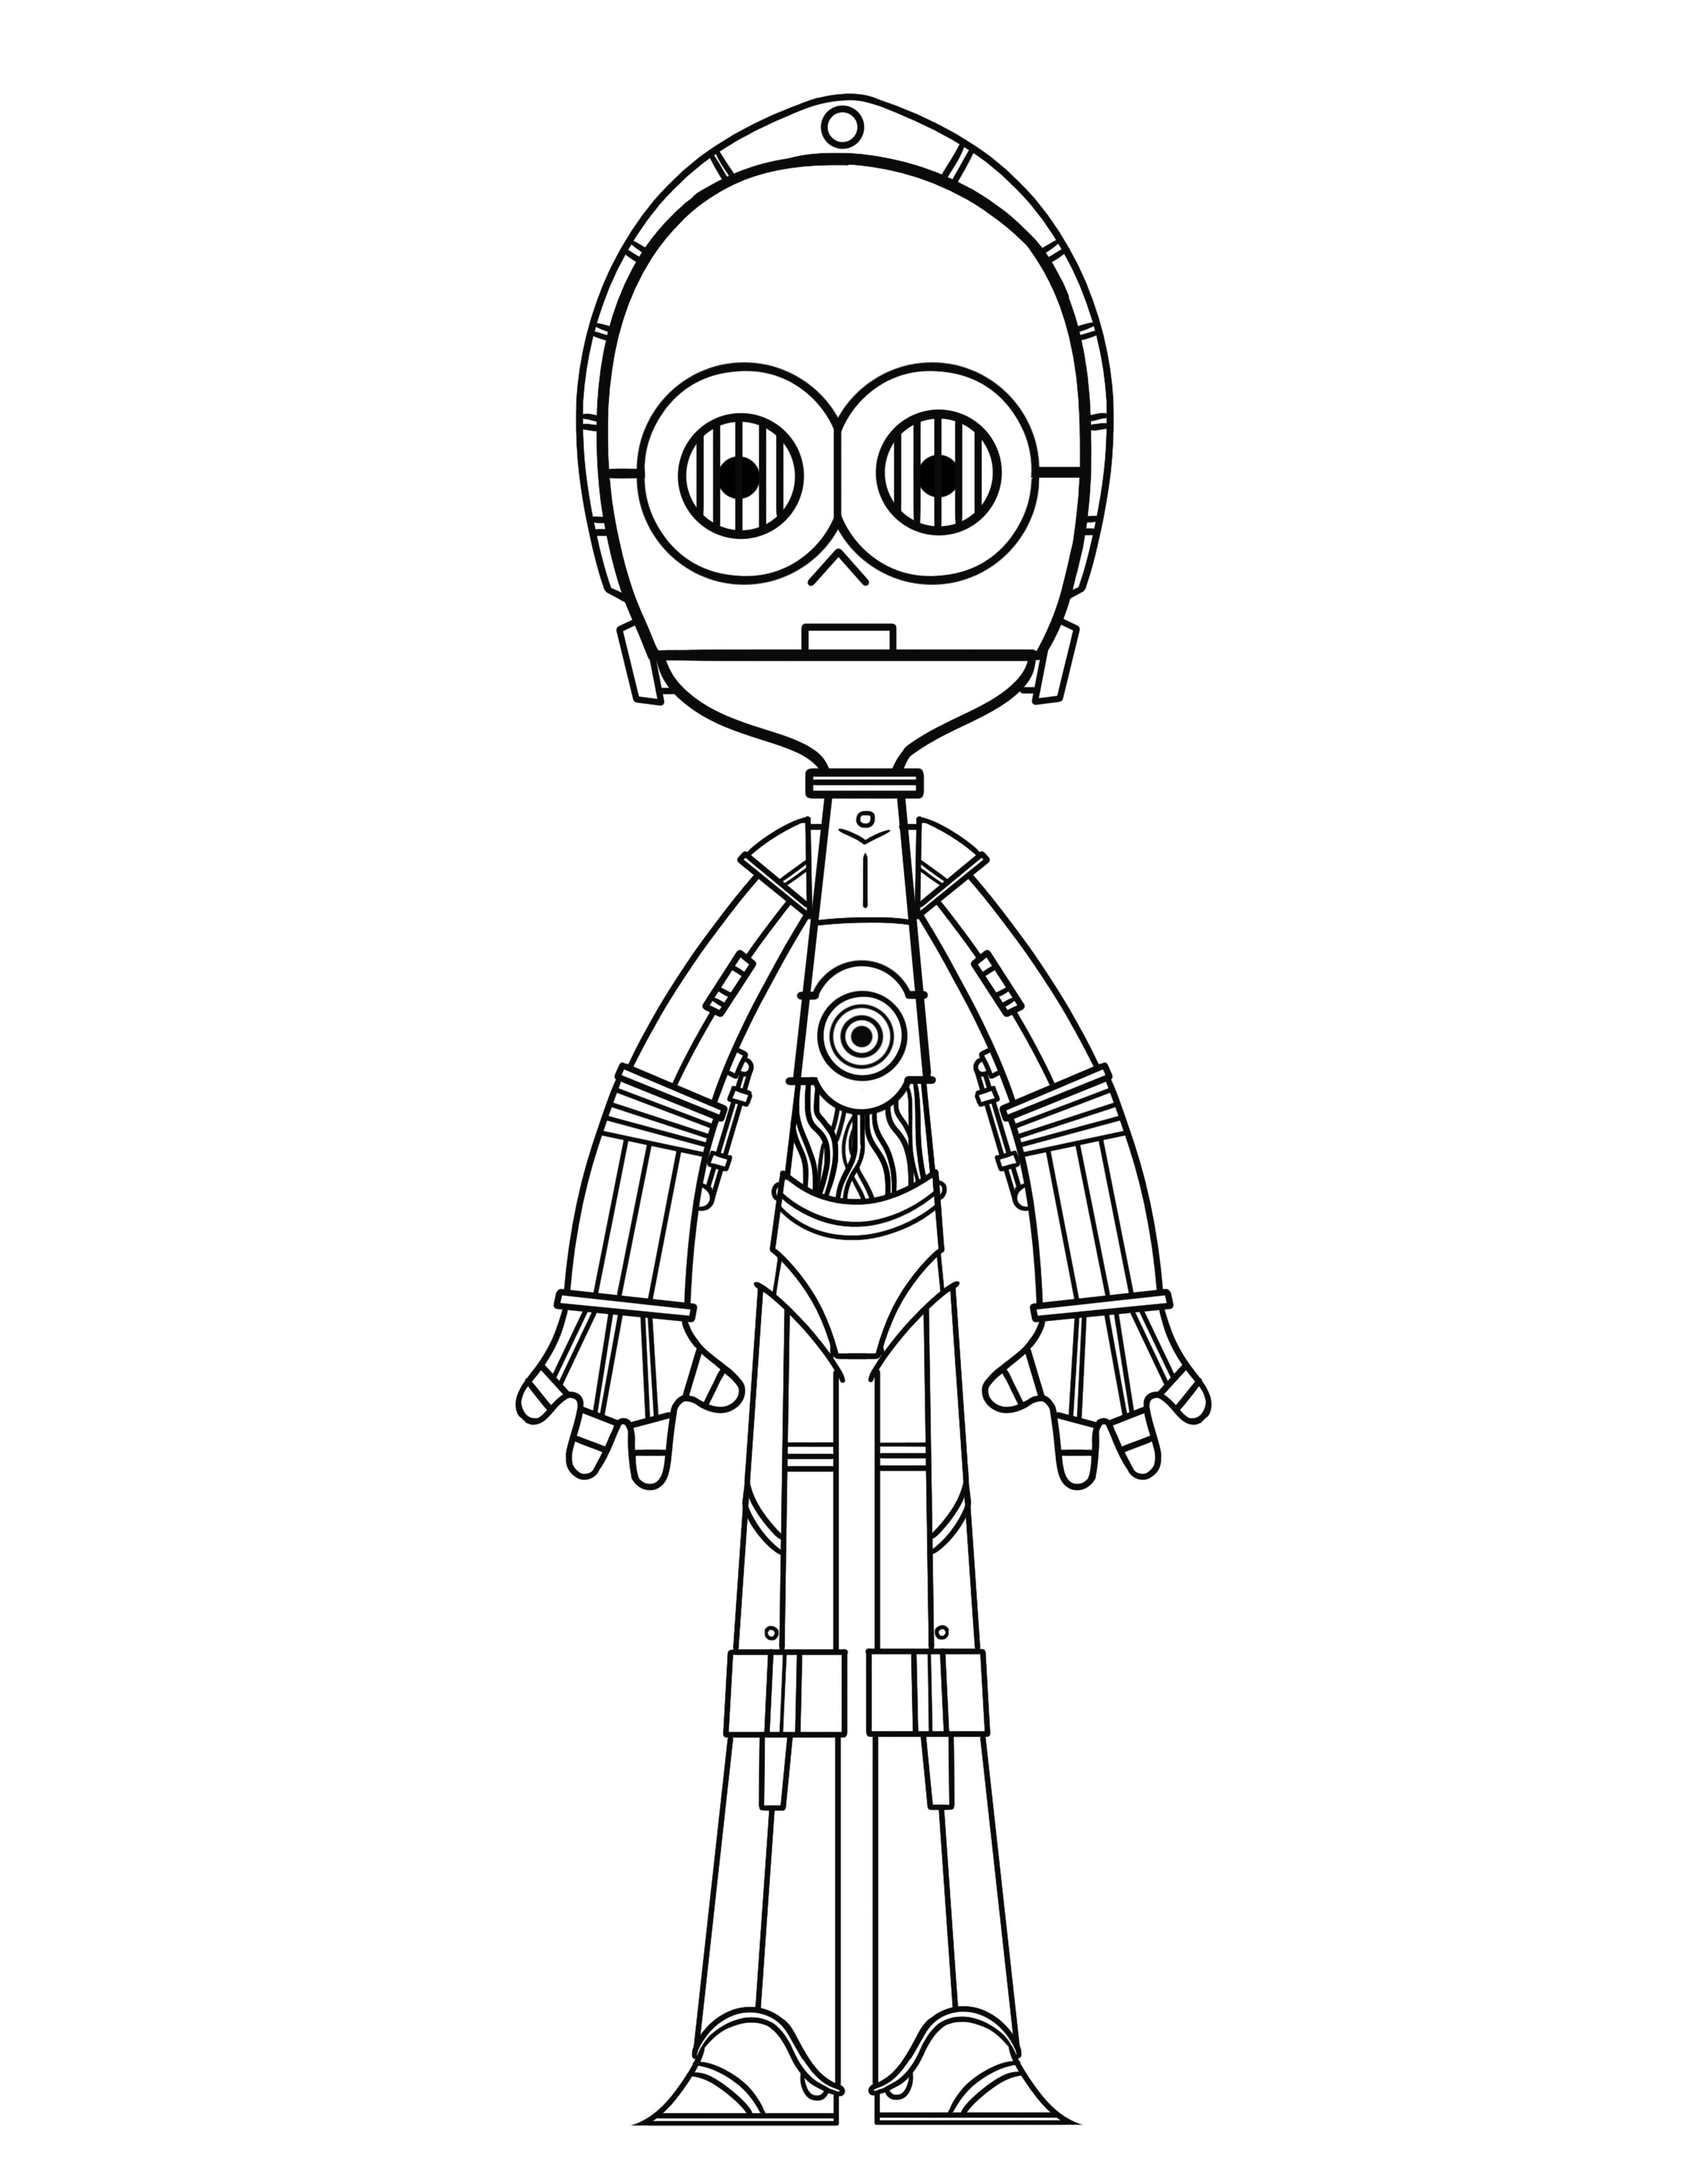 c3po coloring pages C3PO Coloring Page   THE DIG c3po coloring pages